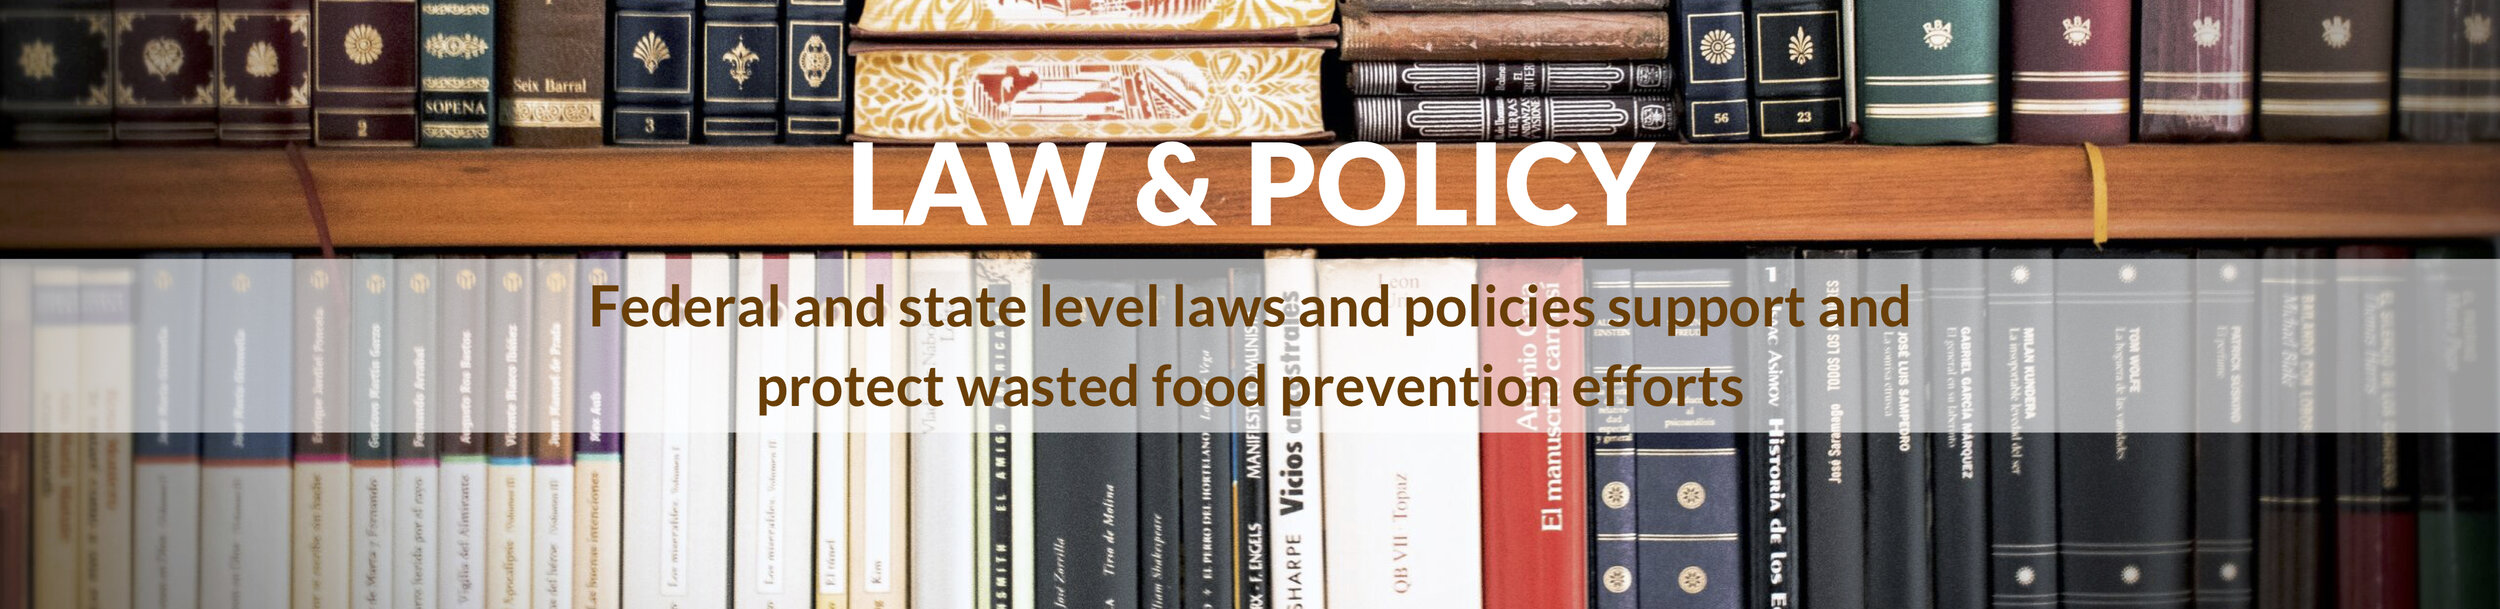 Law & Policy - STFSD Website Image.jpg